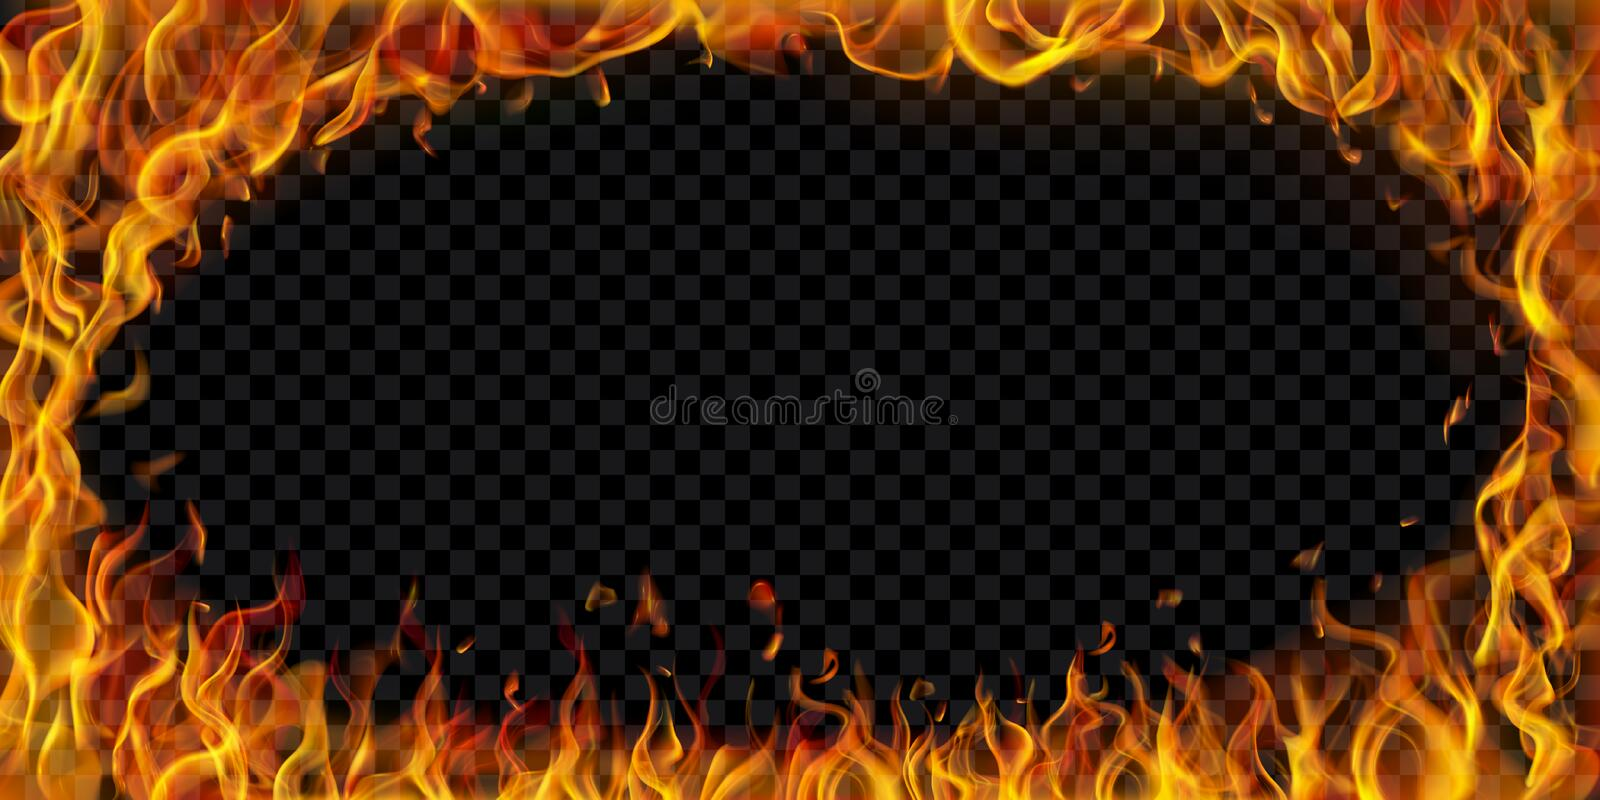 Elliptical frame made of fire stock illustration